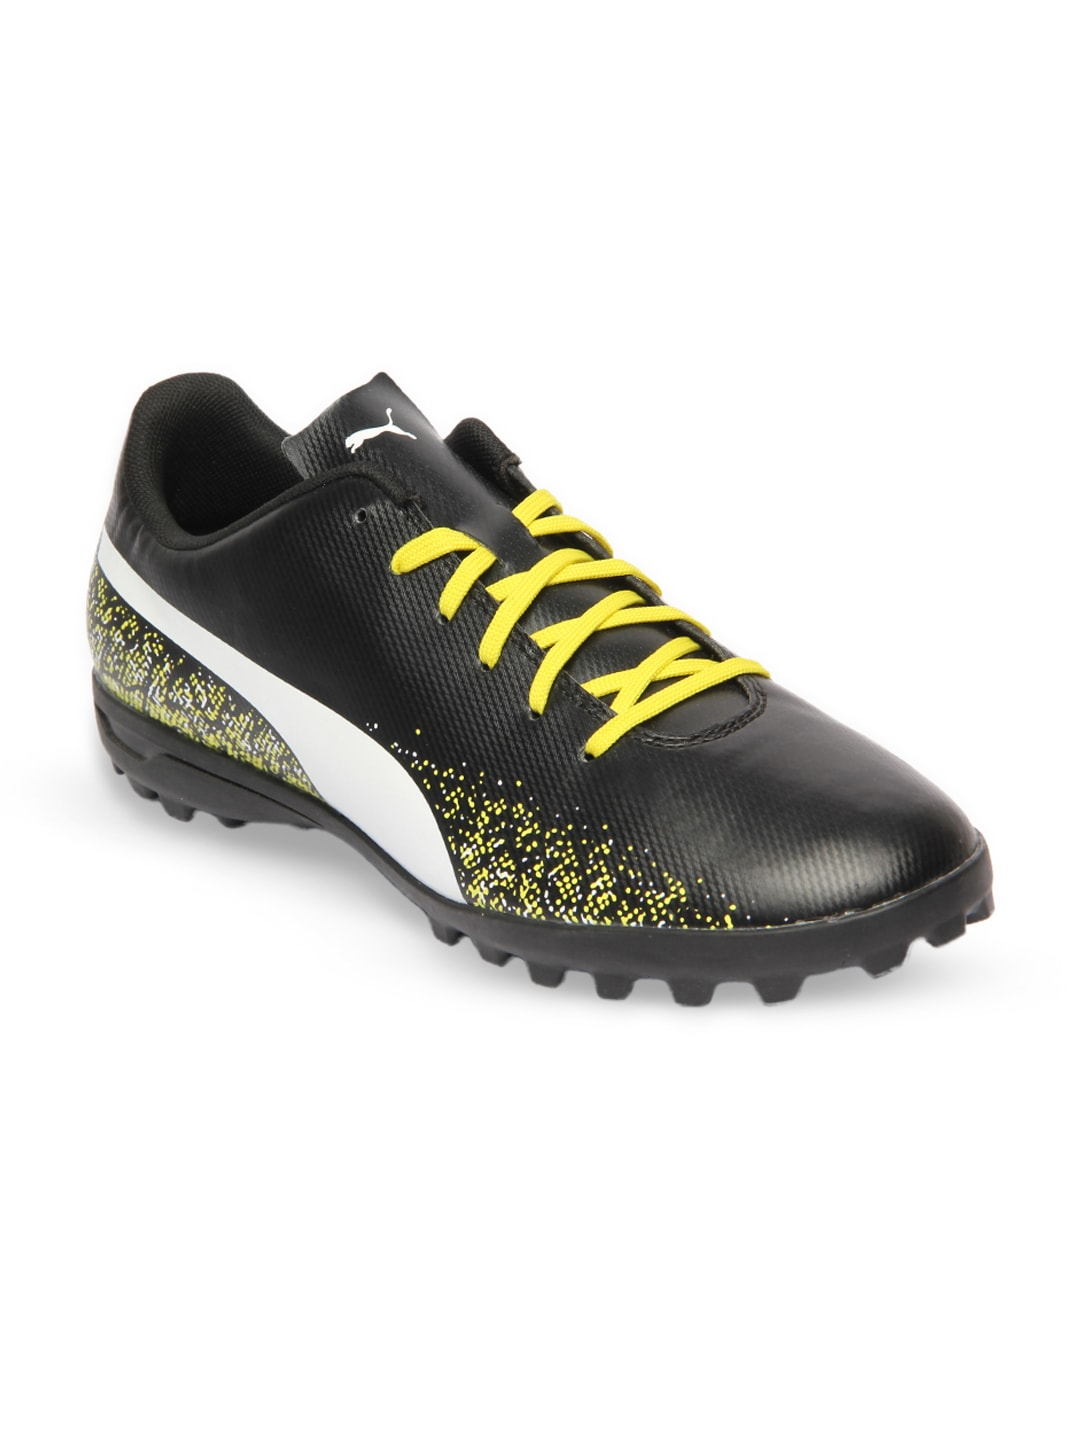 bba36b72097f Sports Shoes for Men - Buy Men Sports Shoes Online in India - Myntra